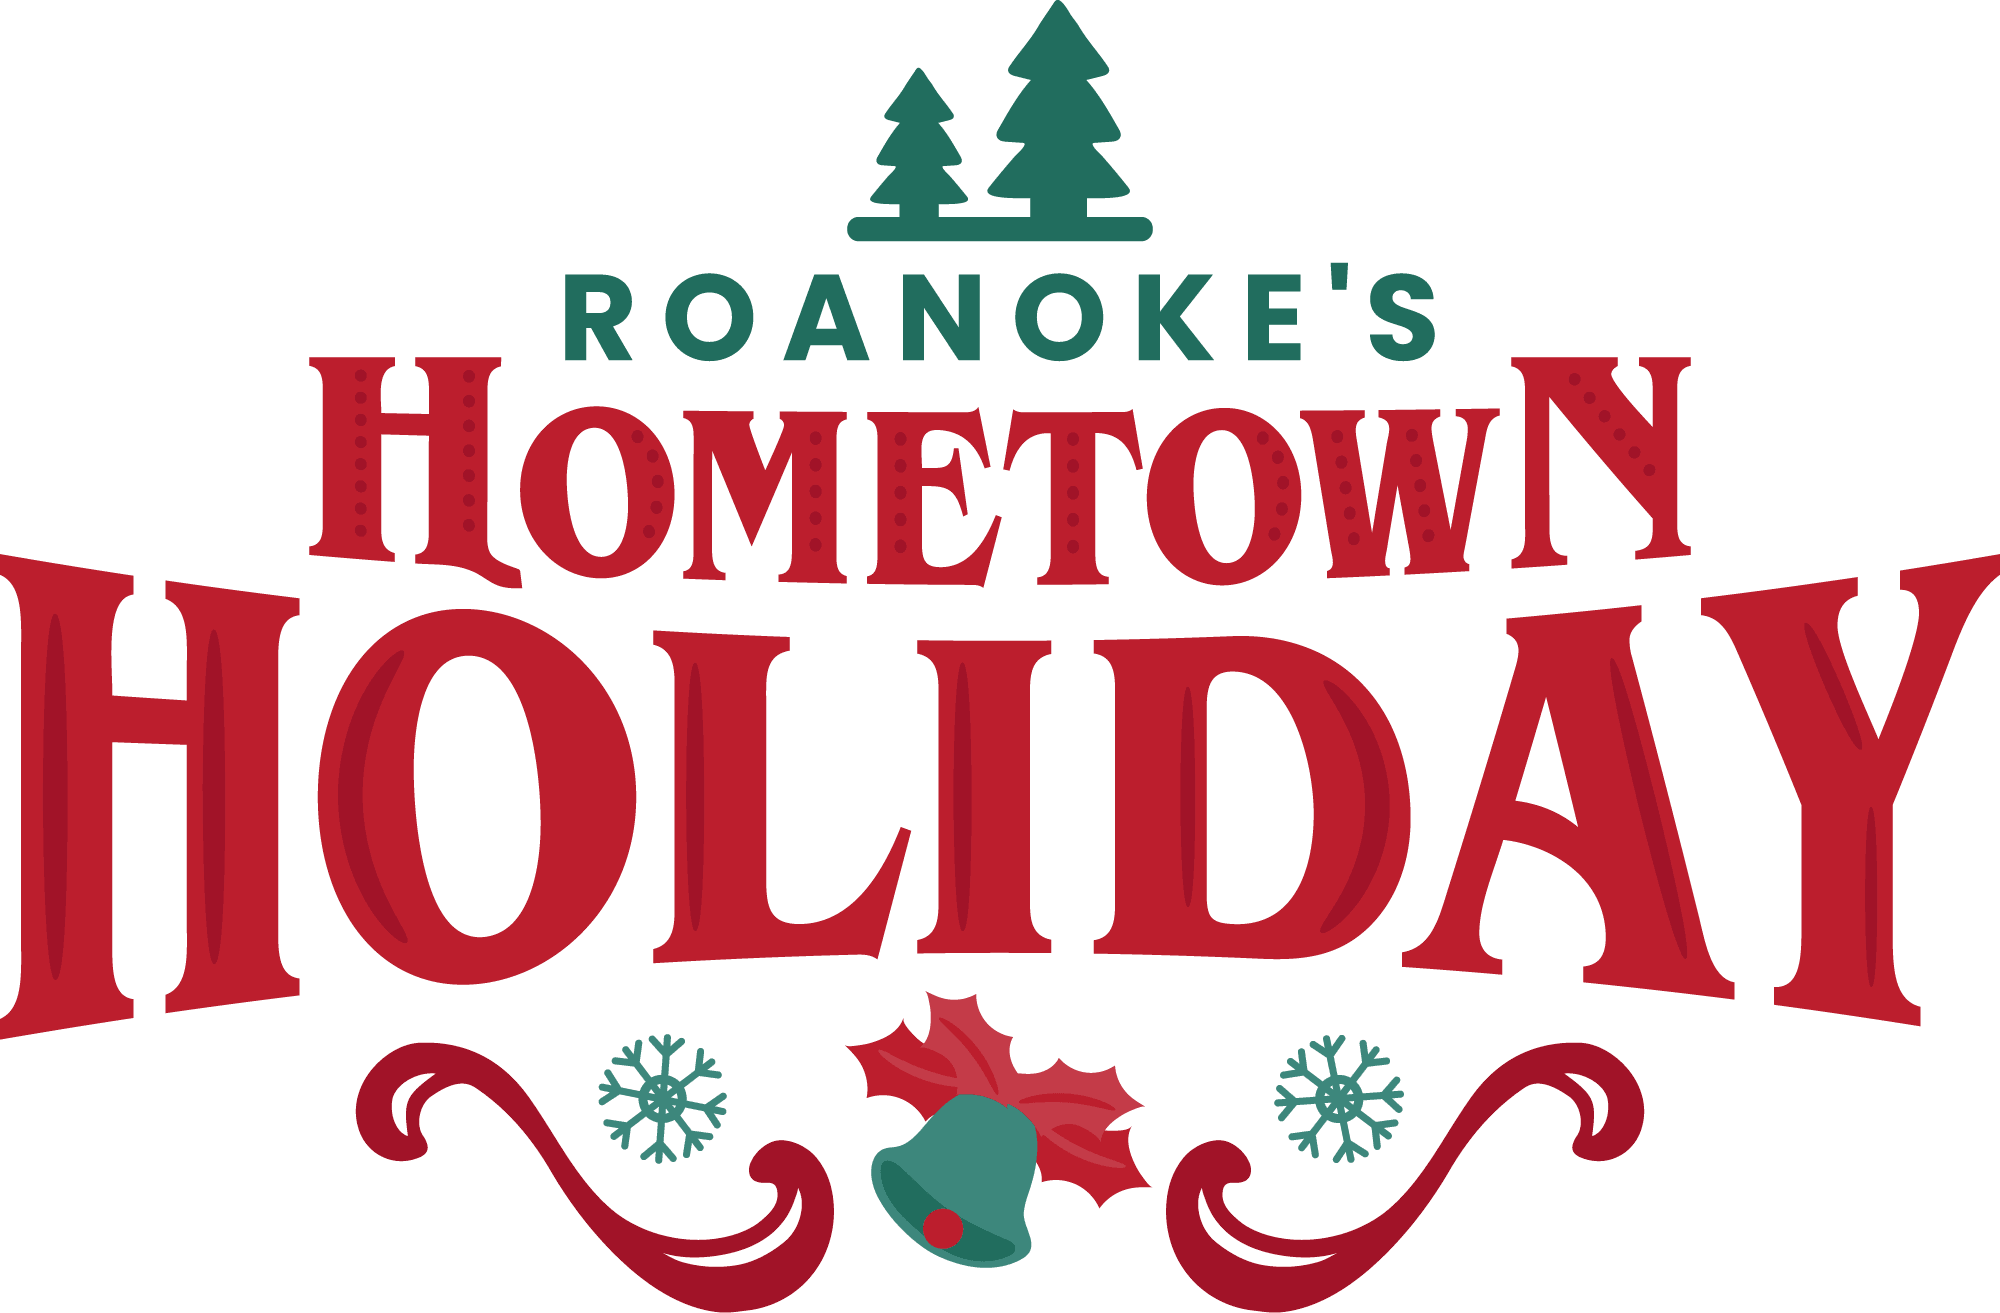 Roanoke's Hometown Holiday